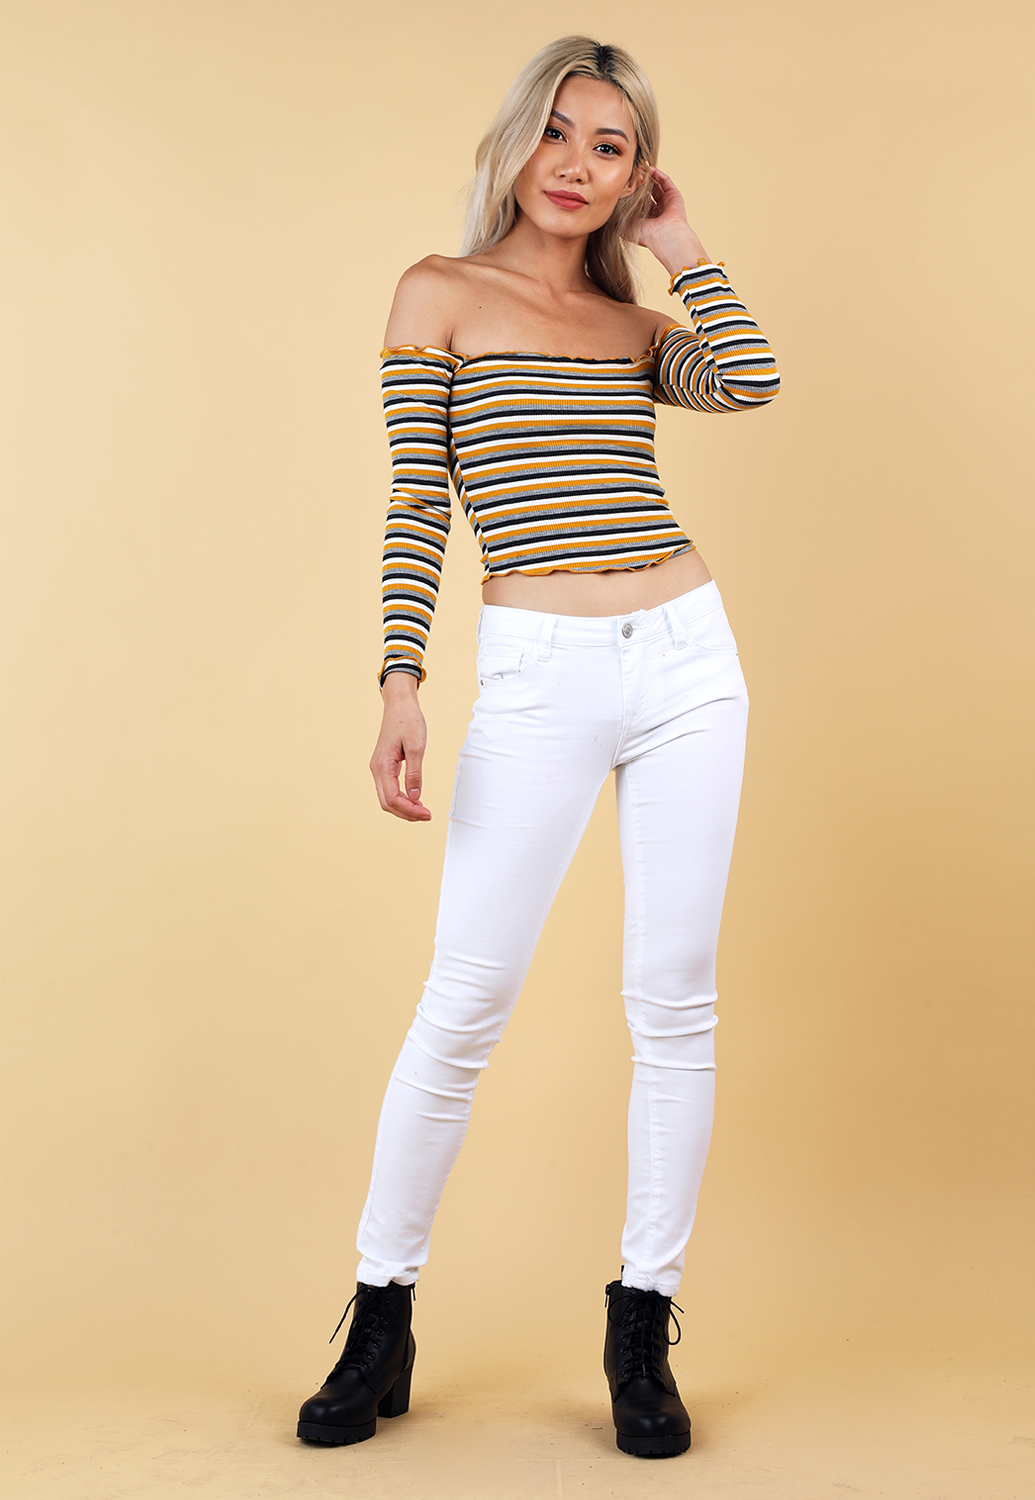 e64b402806a949 Striped Lettuce Edge Crop Top